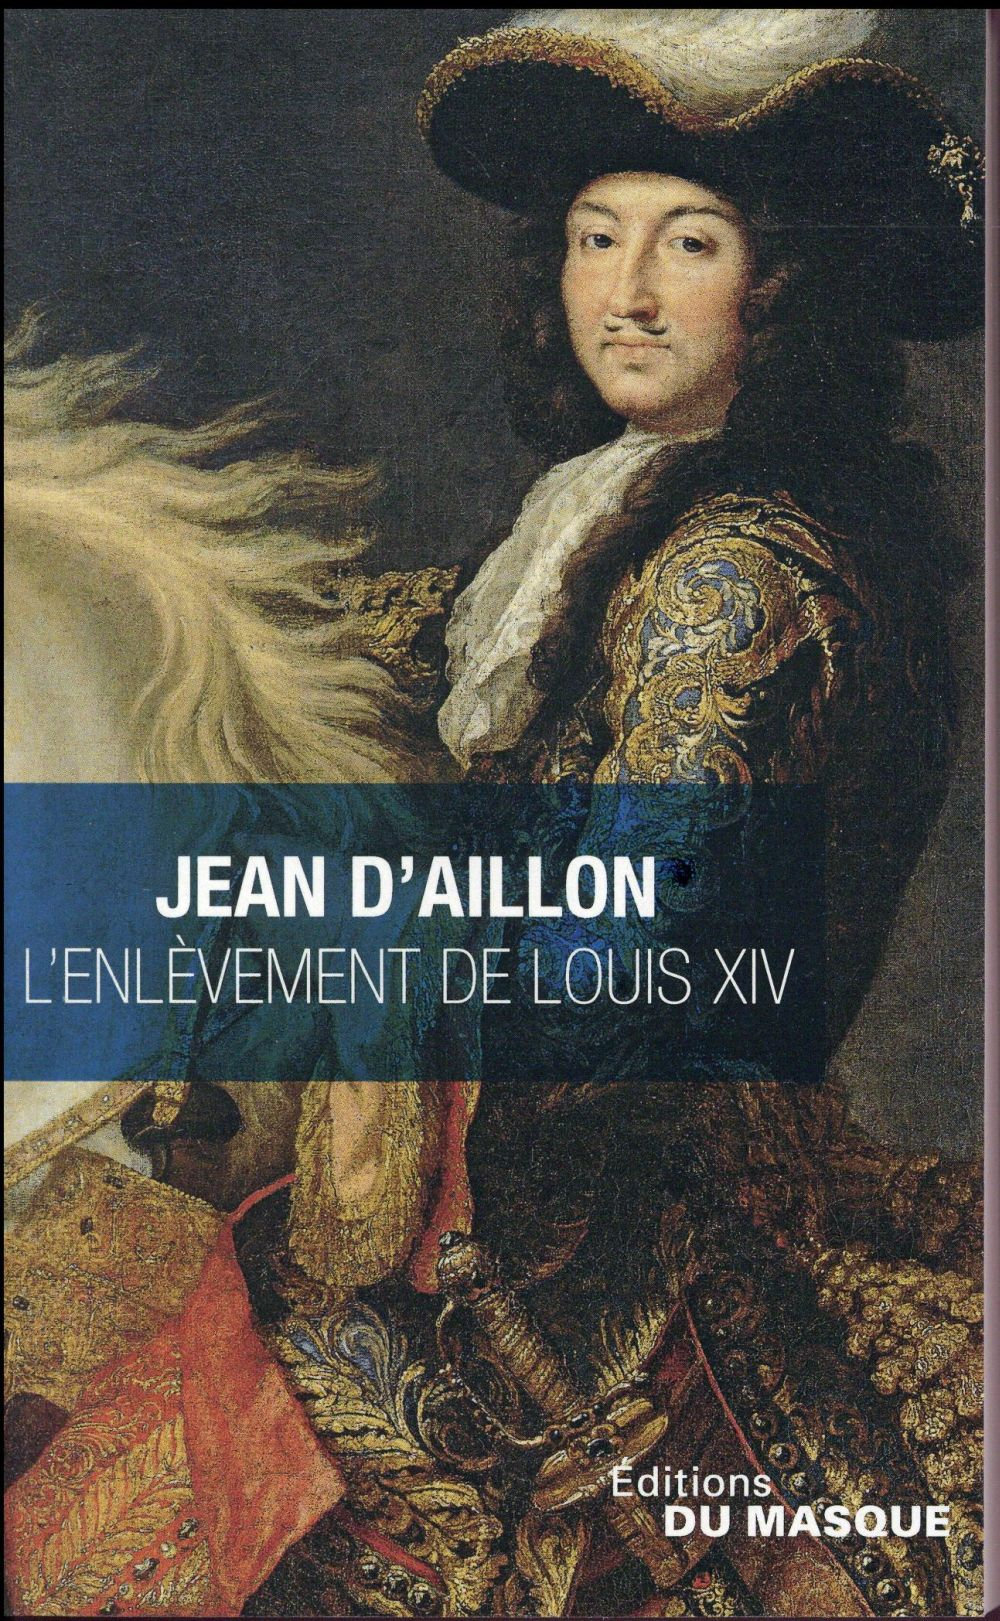 L'ENLEVEMENT DE LOUIS XIV